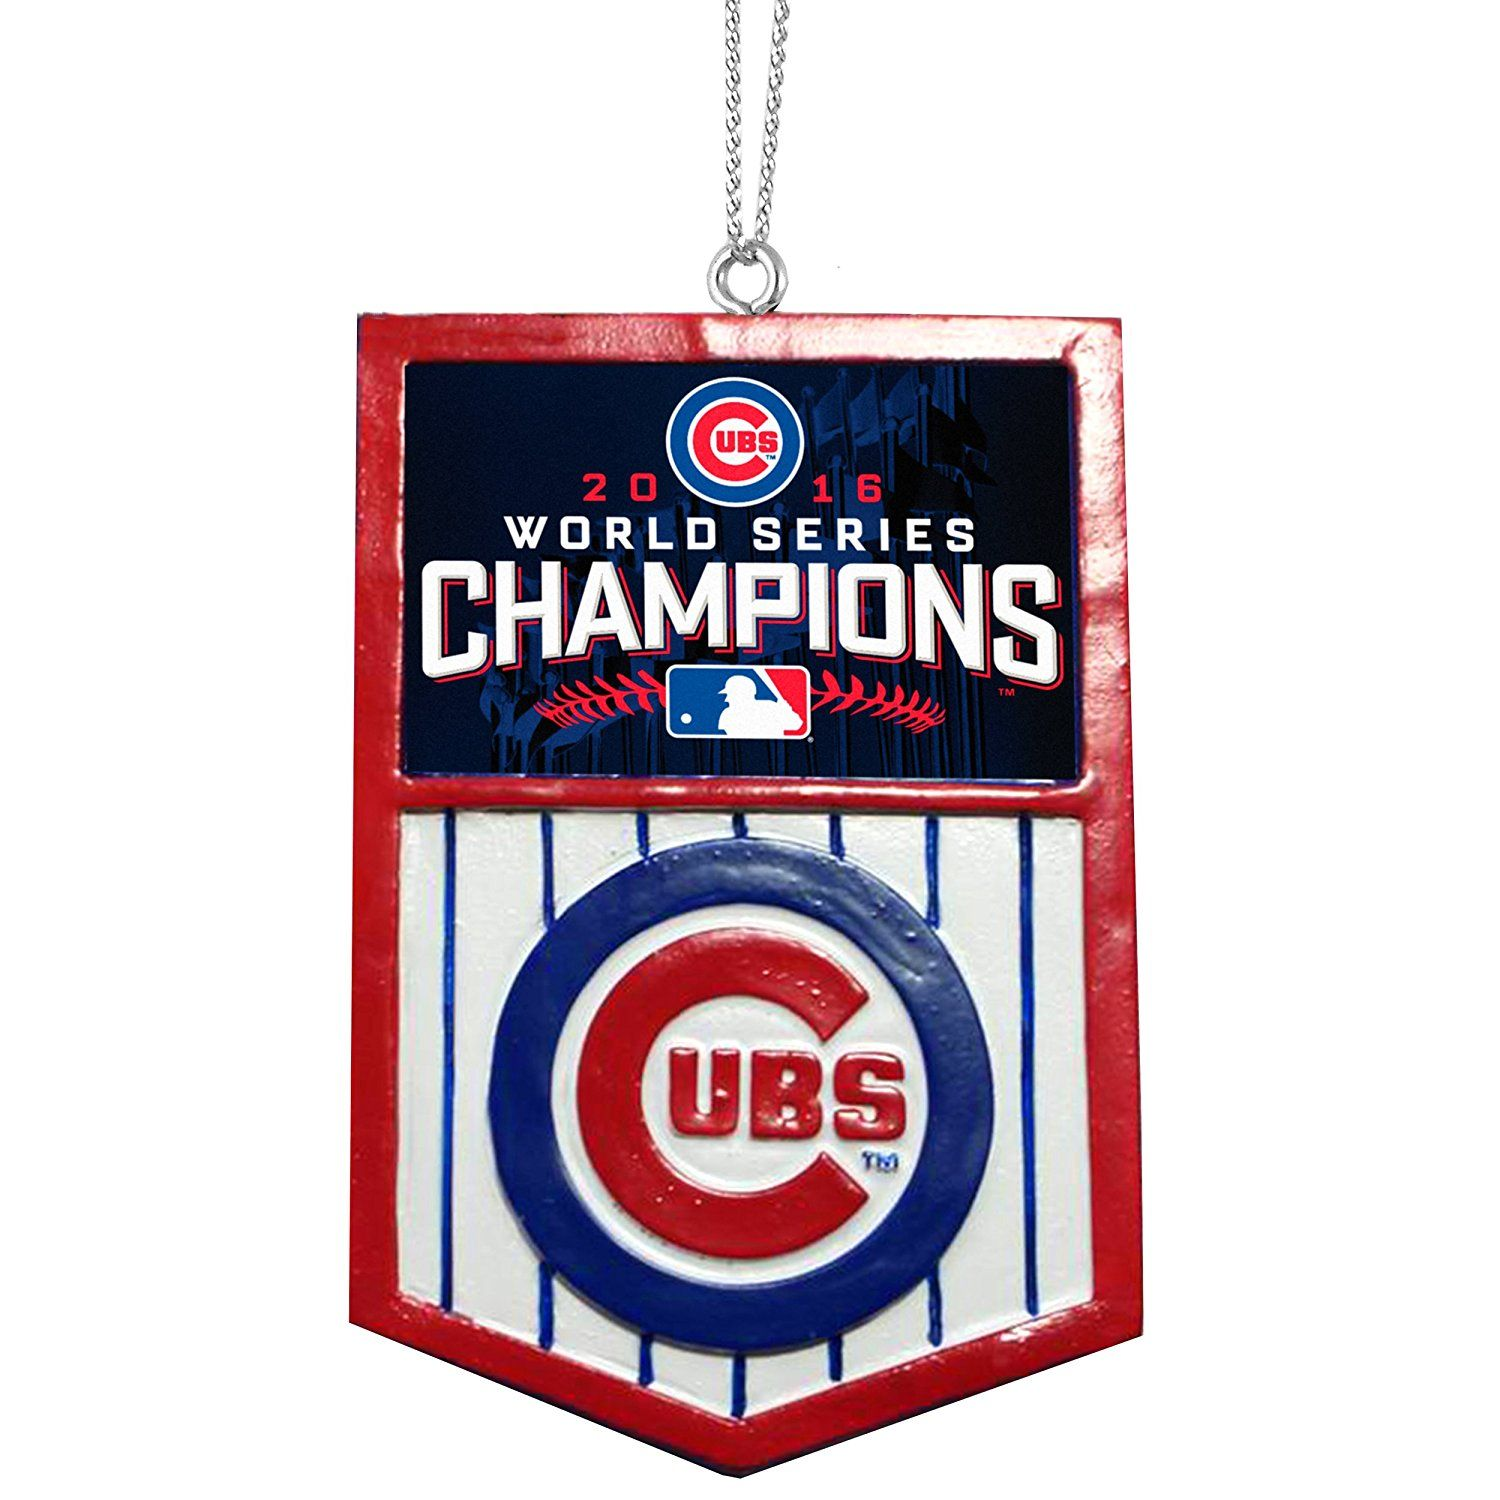 Mlb Chicago Cubs World Series 2016 Champions Holiday Ornament Banner